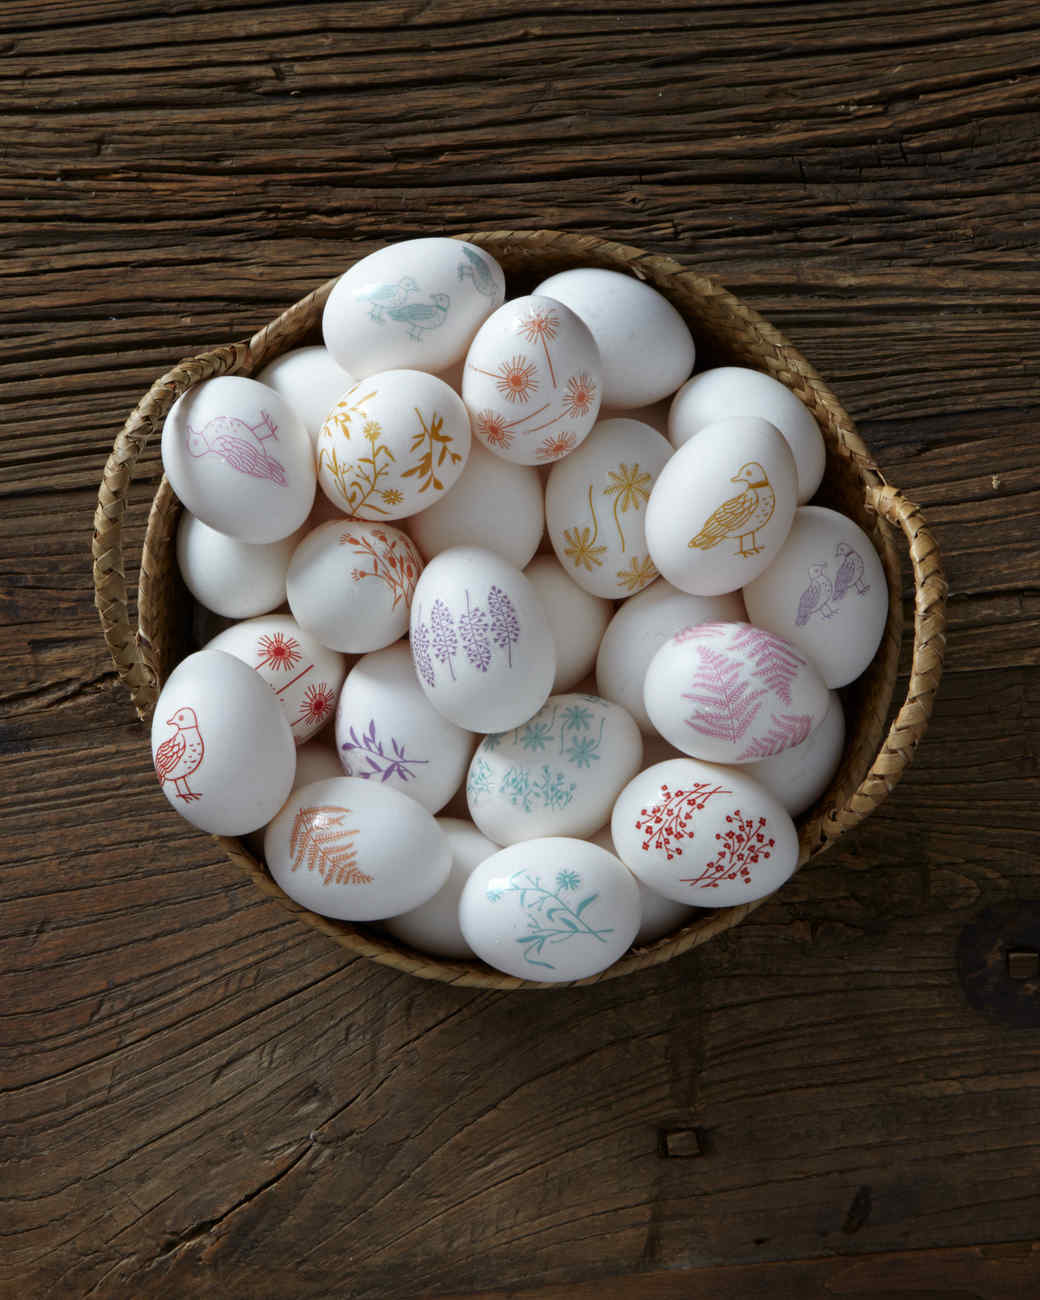 egg-decals-250-0414-d111240.jpg